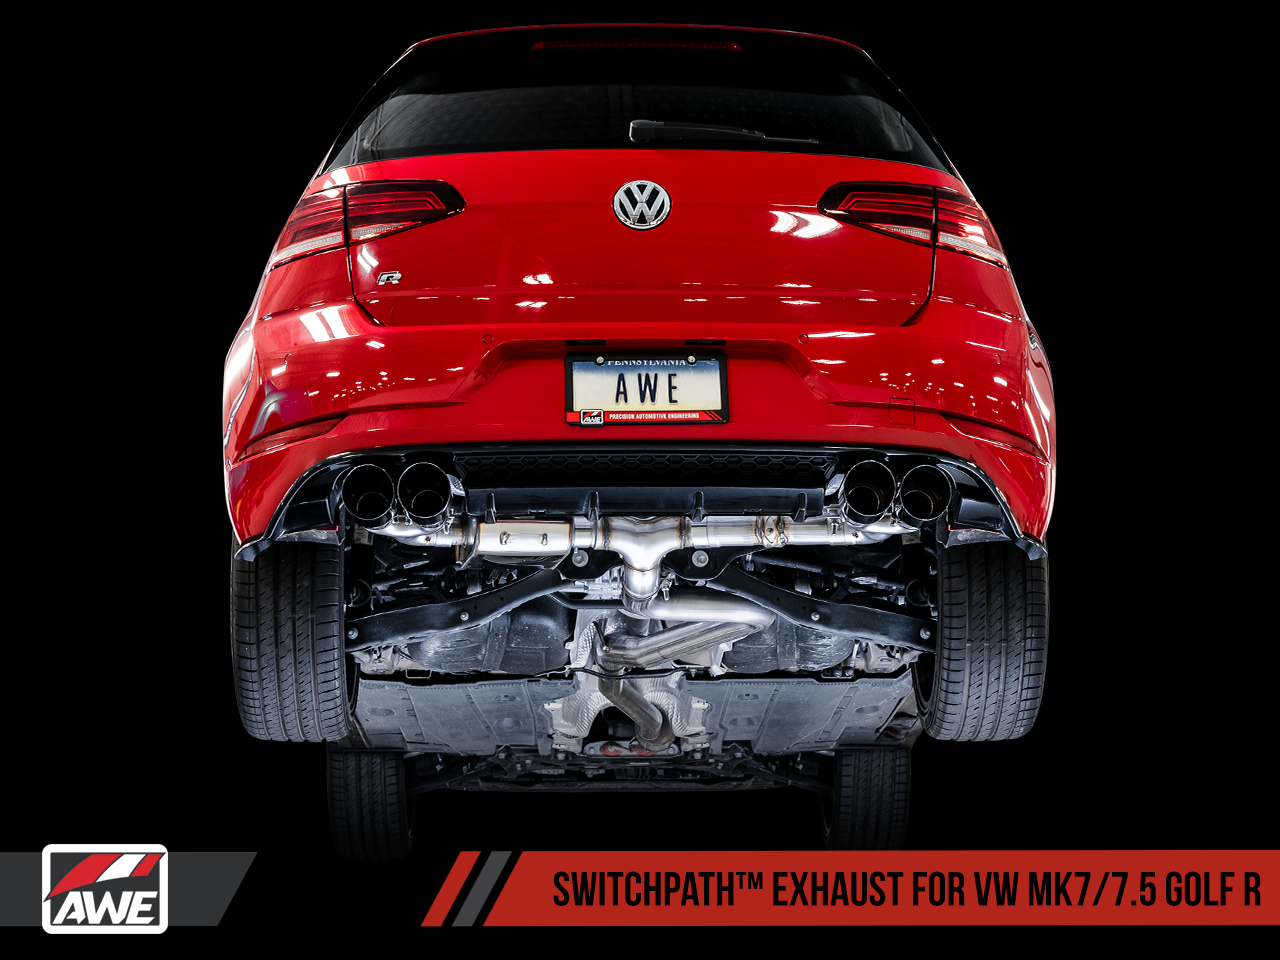 Awe Exhaust And Downpipe Suite For Mk7 Golf R Awe